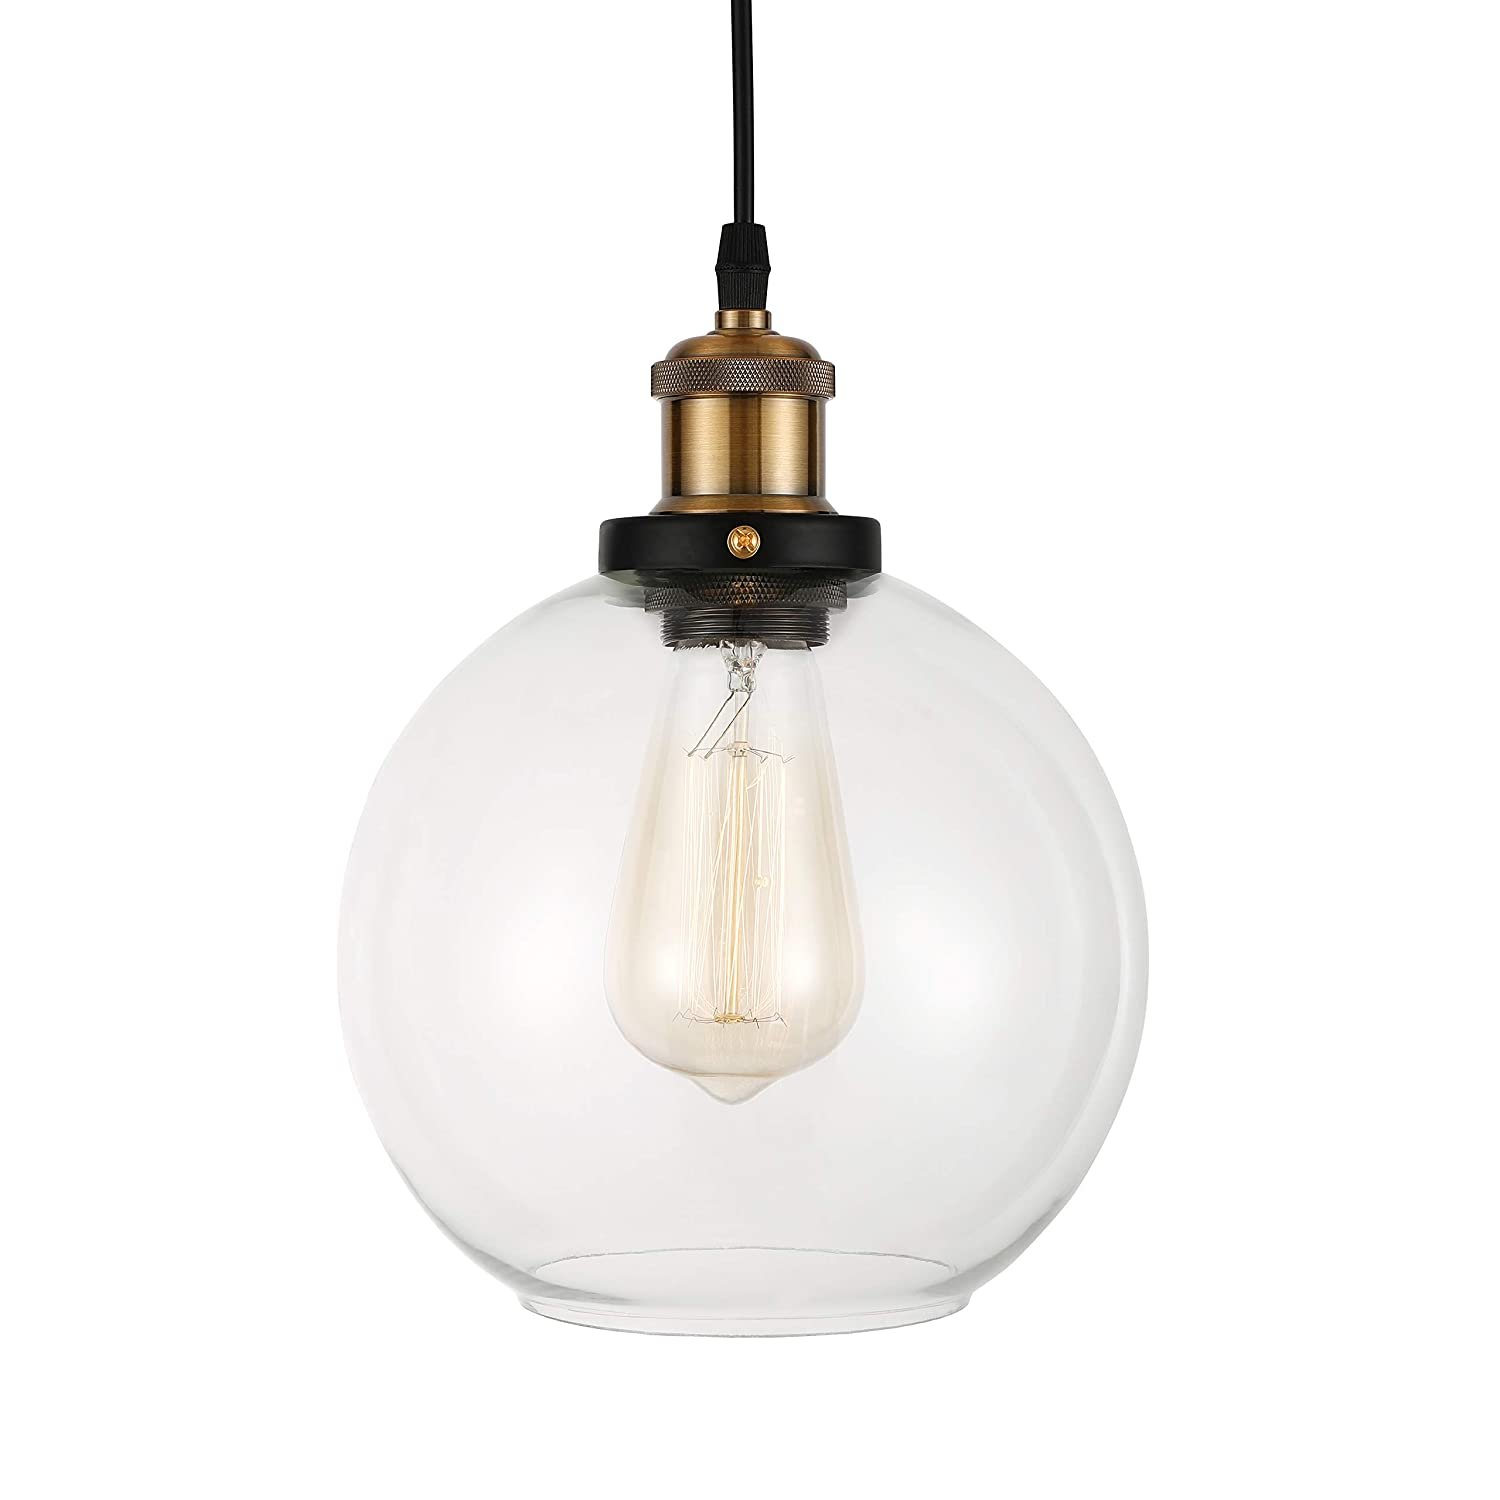 Baycheer hl409803 industrial vintage style clear glass globe mini pendant light ceiling lighting ceiling lamp with 1 light